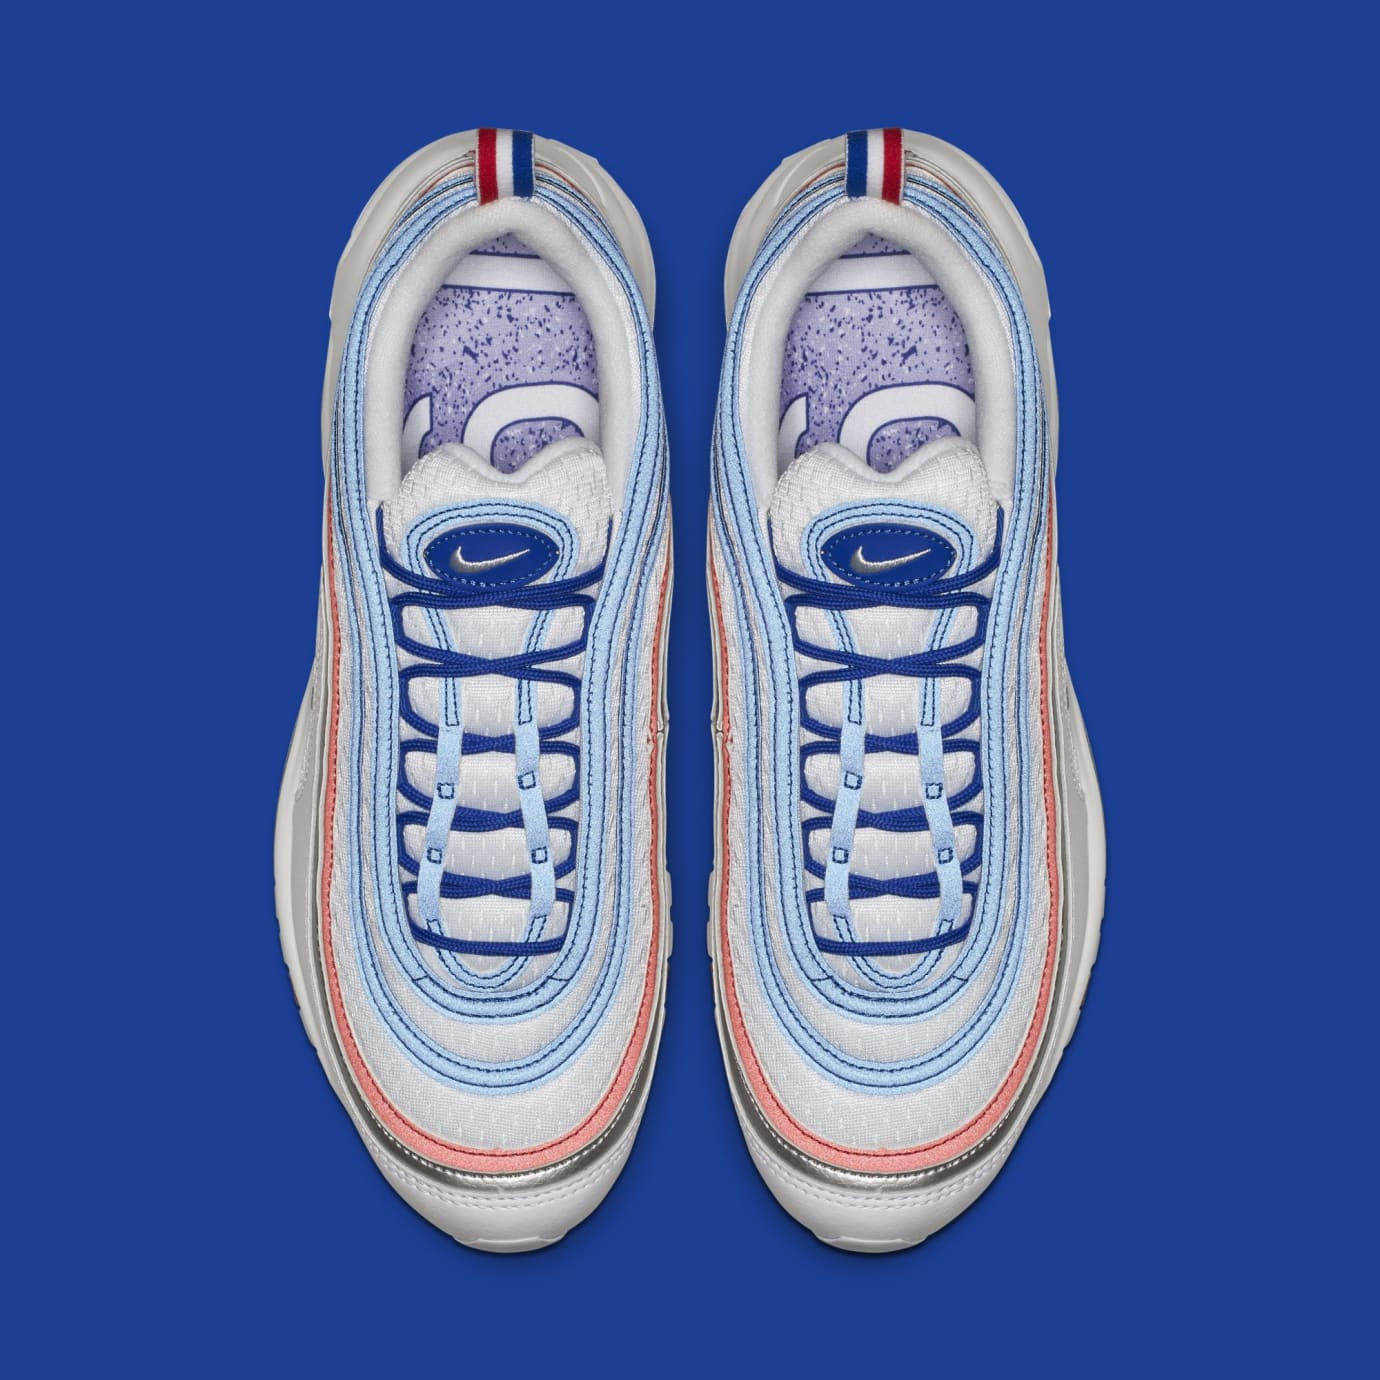 a89f35ef13a Image via Nike Nike Air Max 97  Game Royal Metallic Silver-White  921826-404